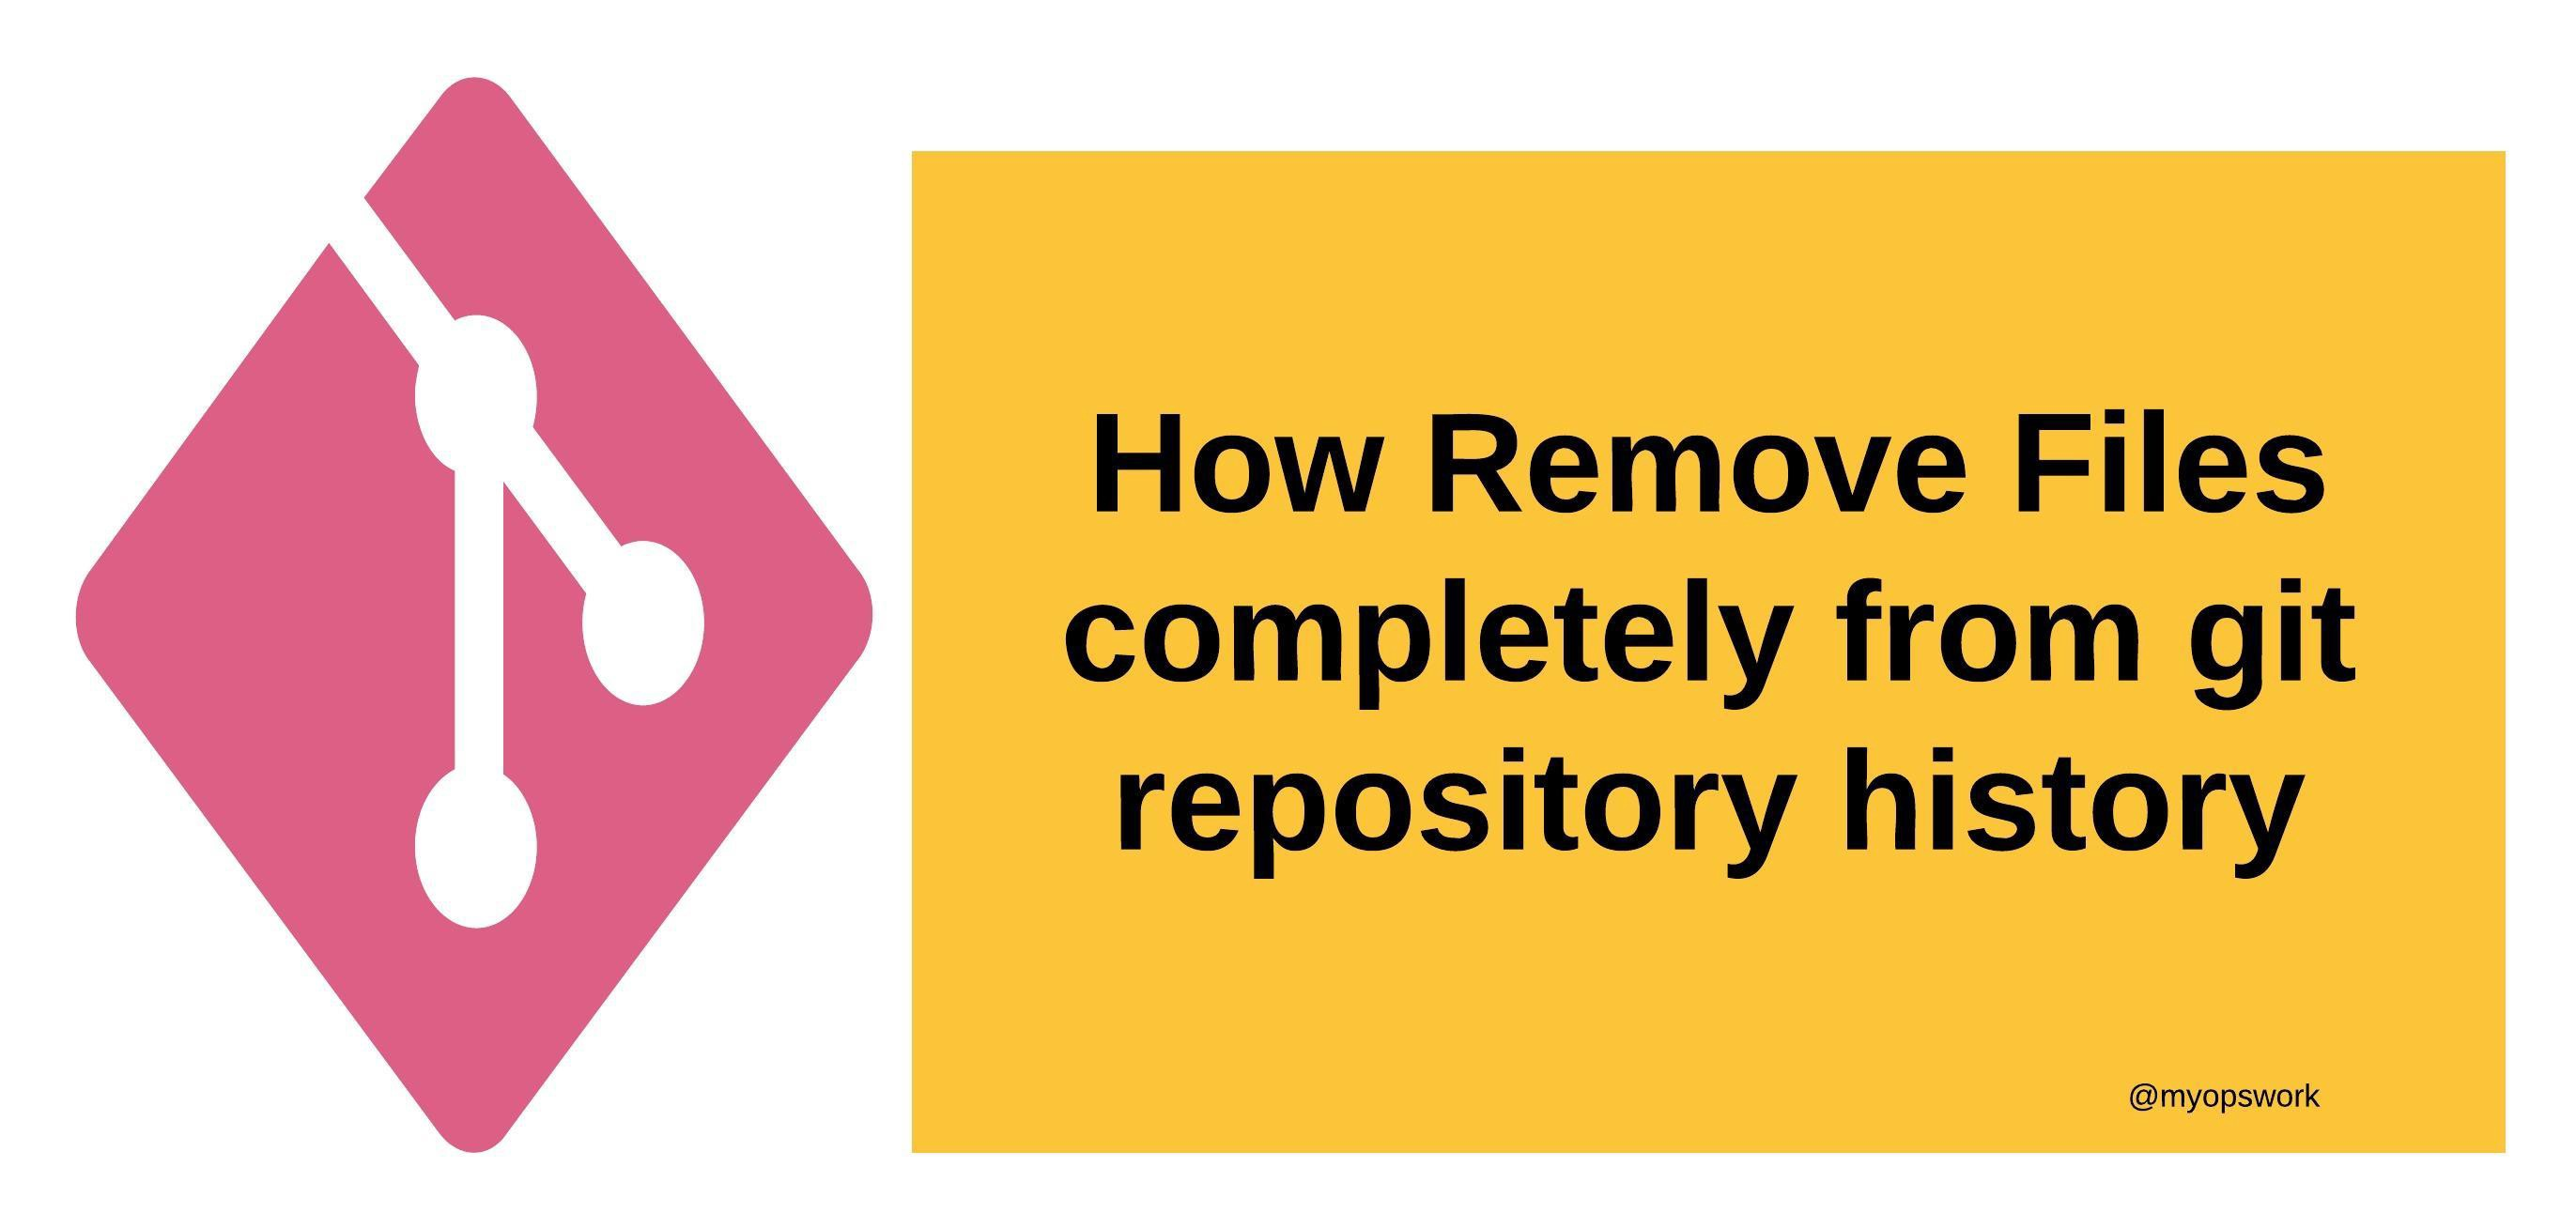 How Remove Files completely from git repository history